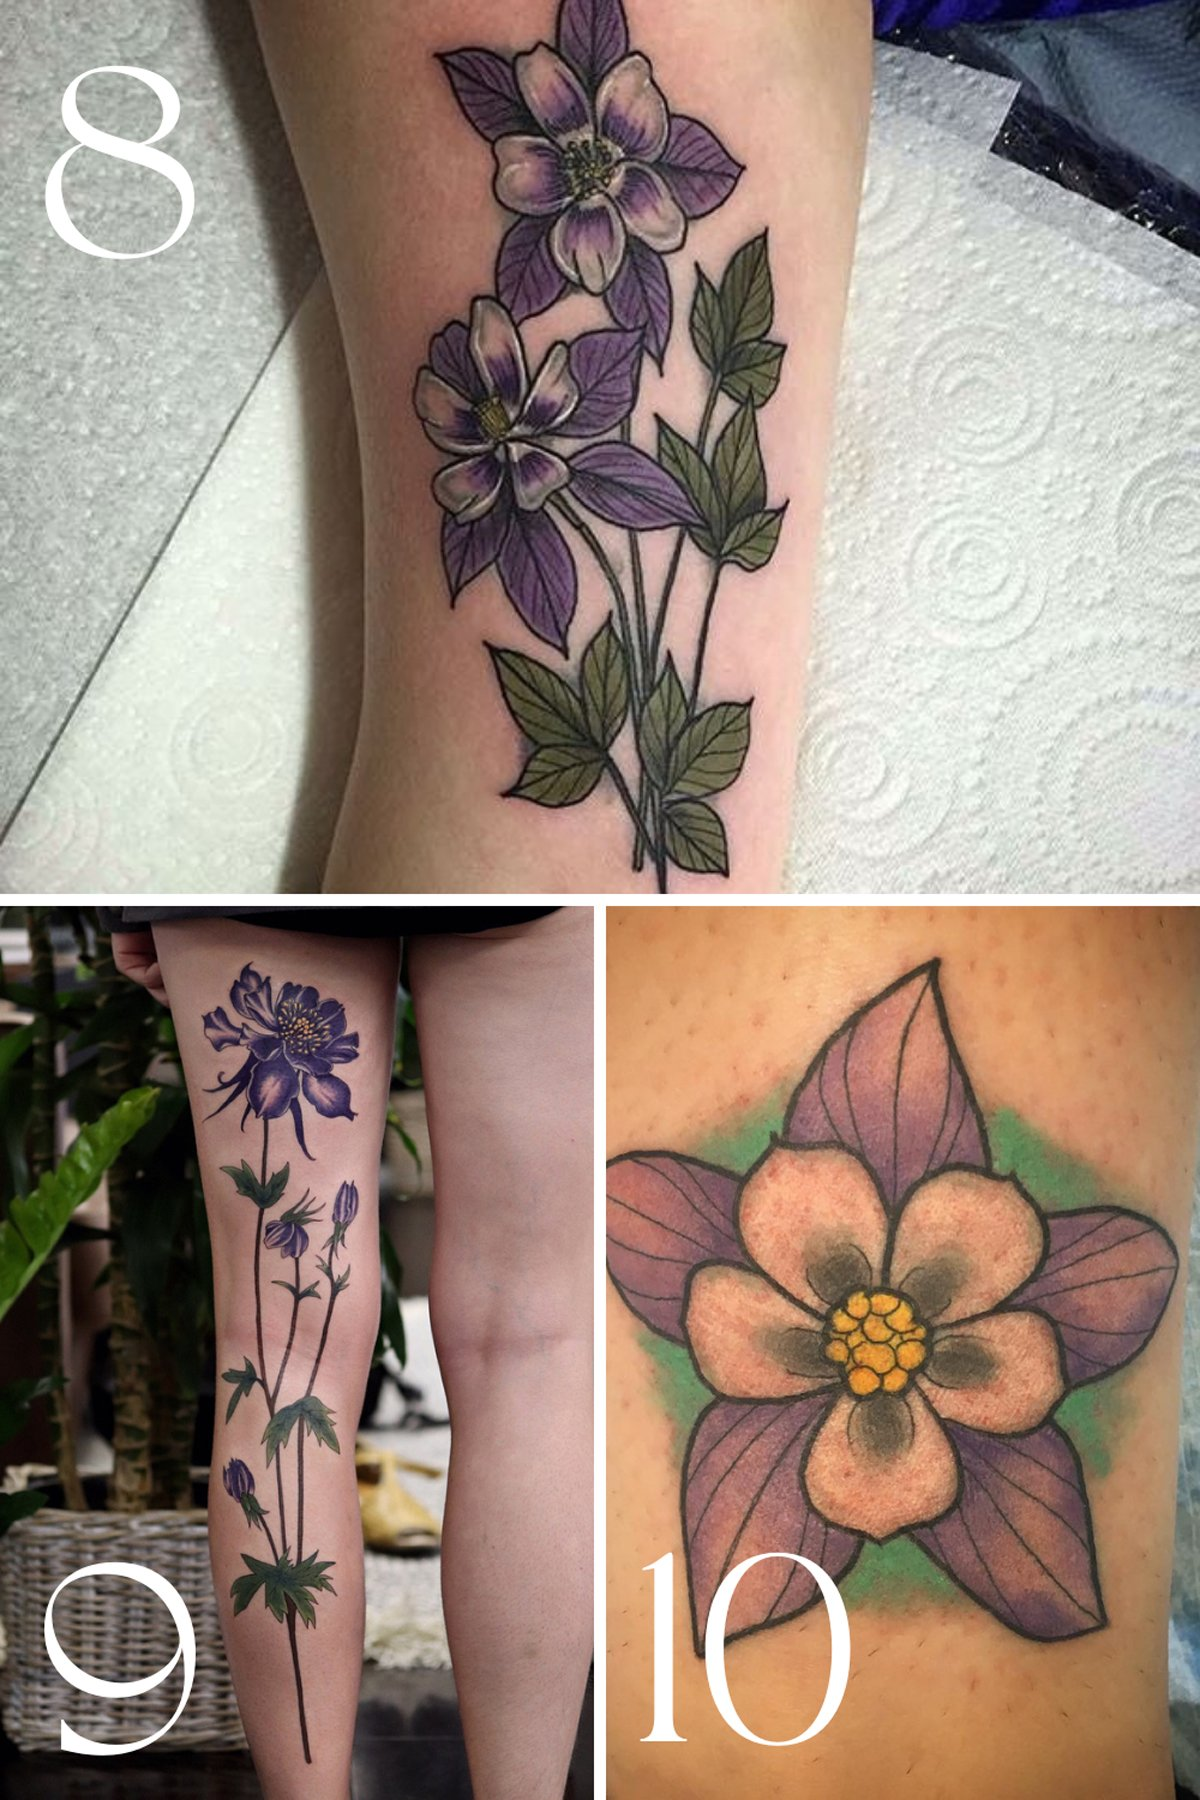 Flower tattoos to commemorate tragedy